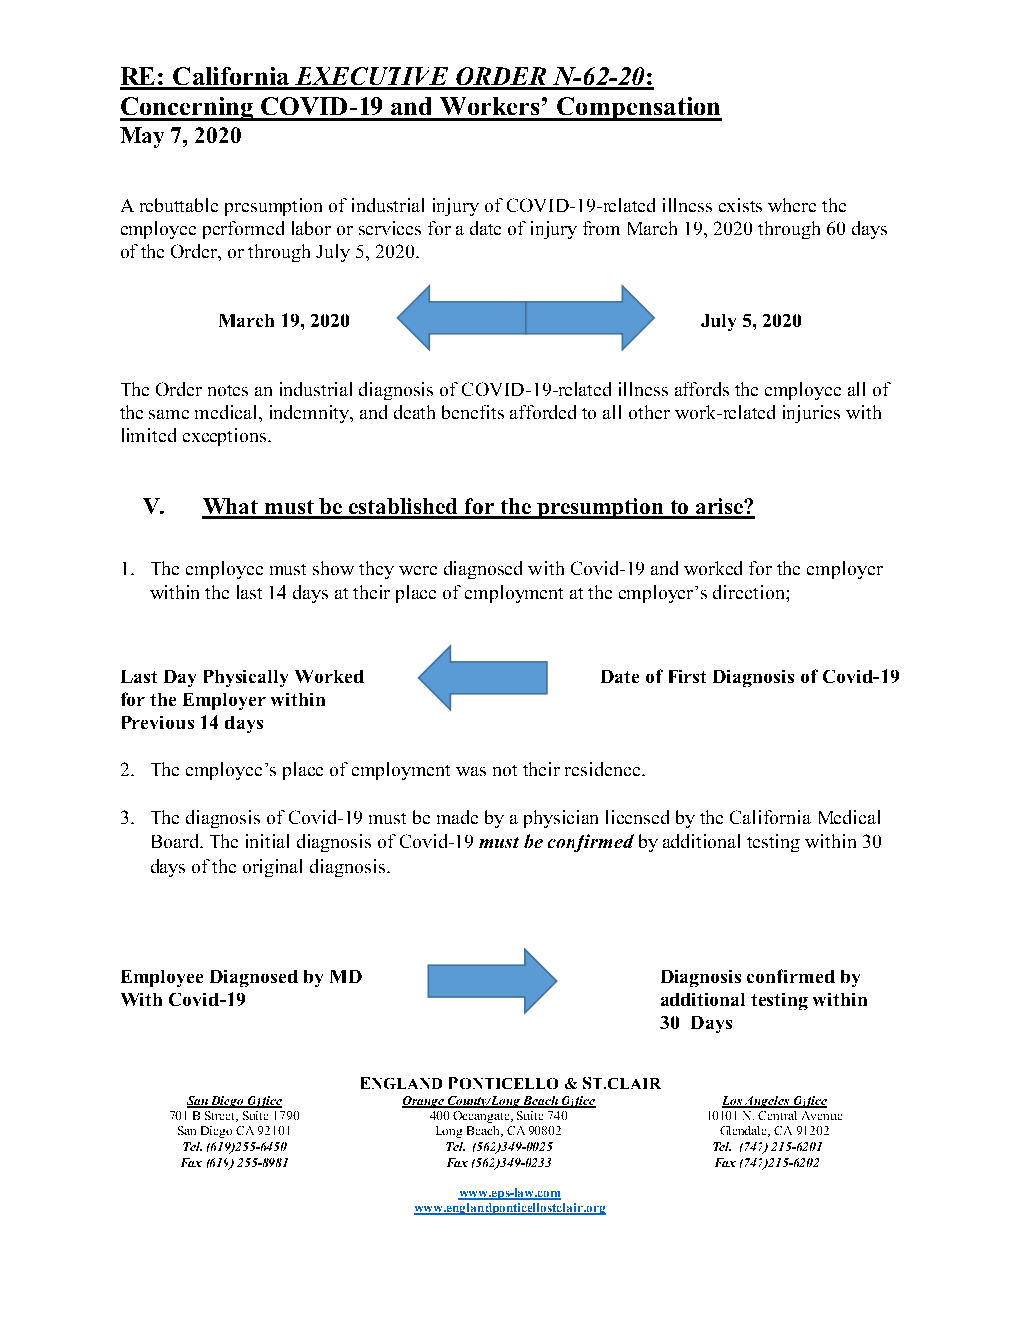 EPS Re Covid 19 Executive Order_Page3